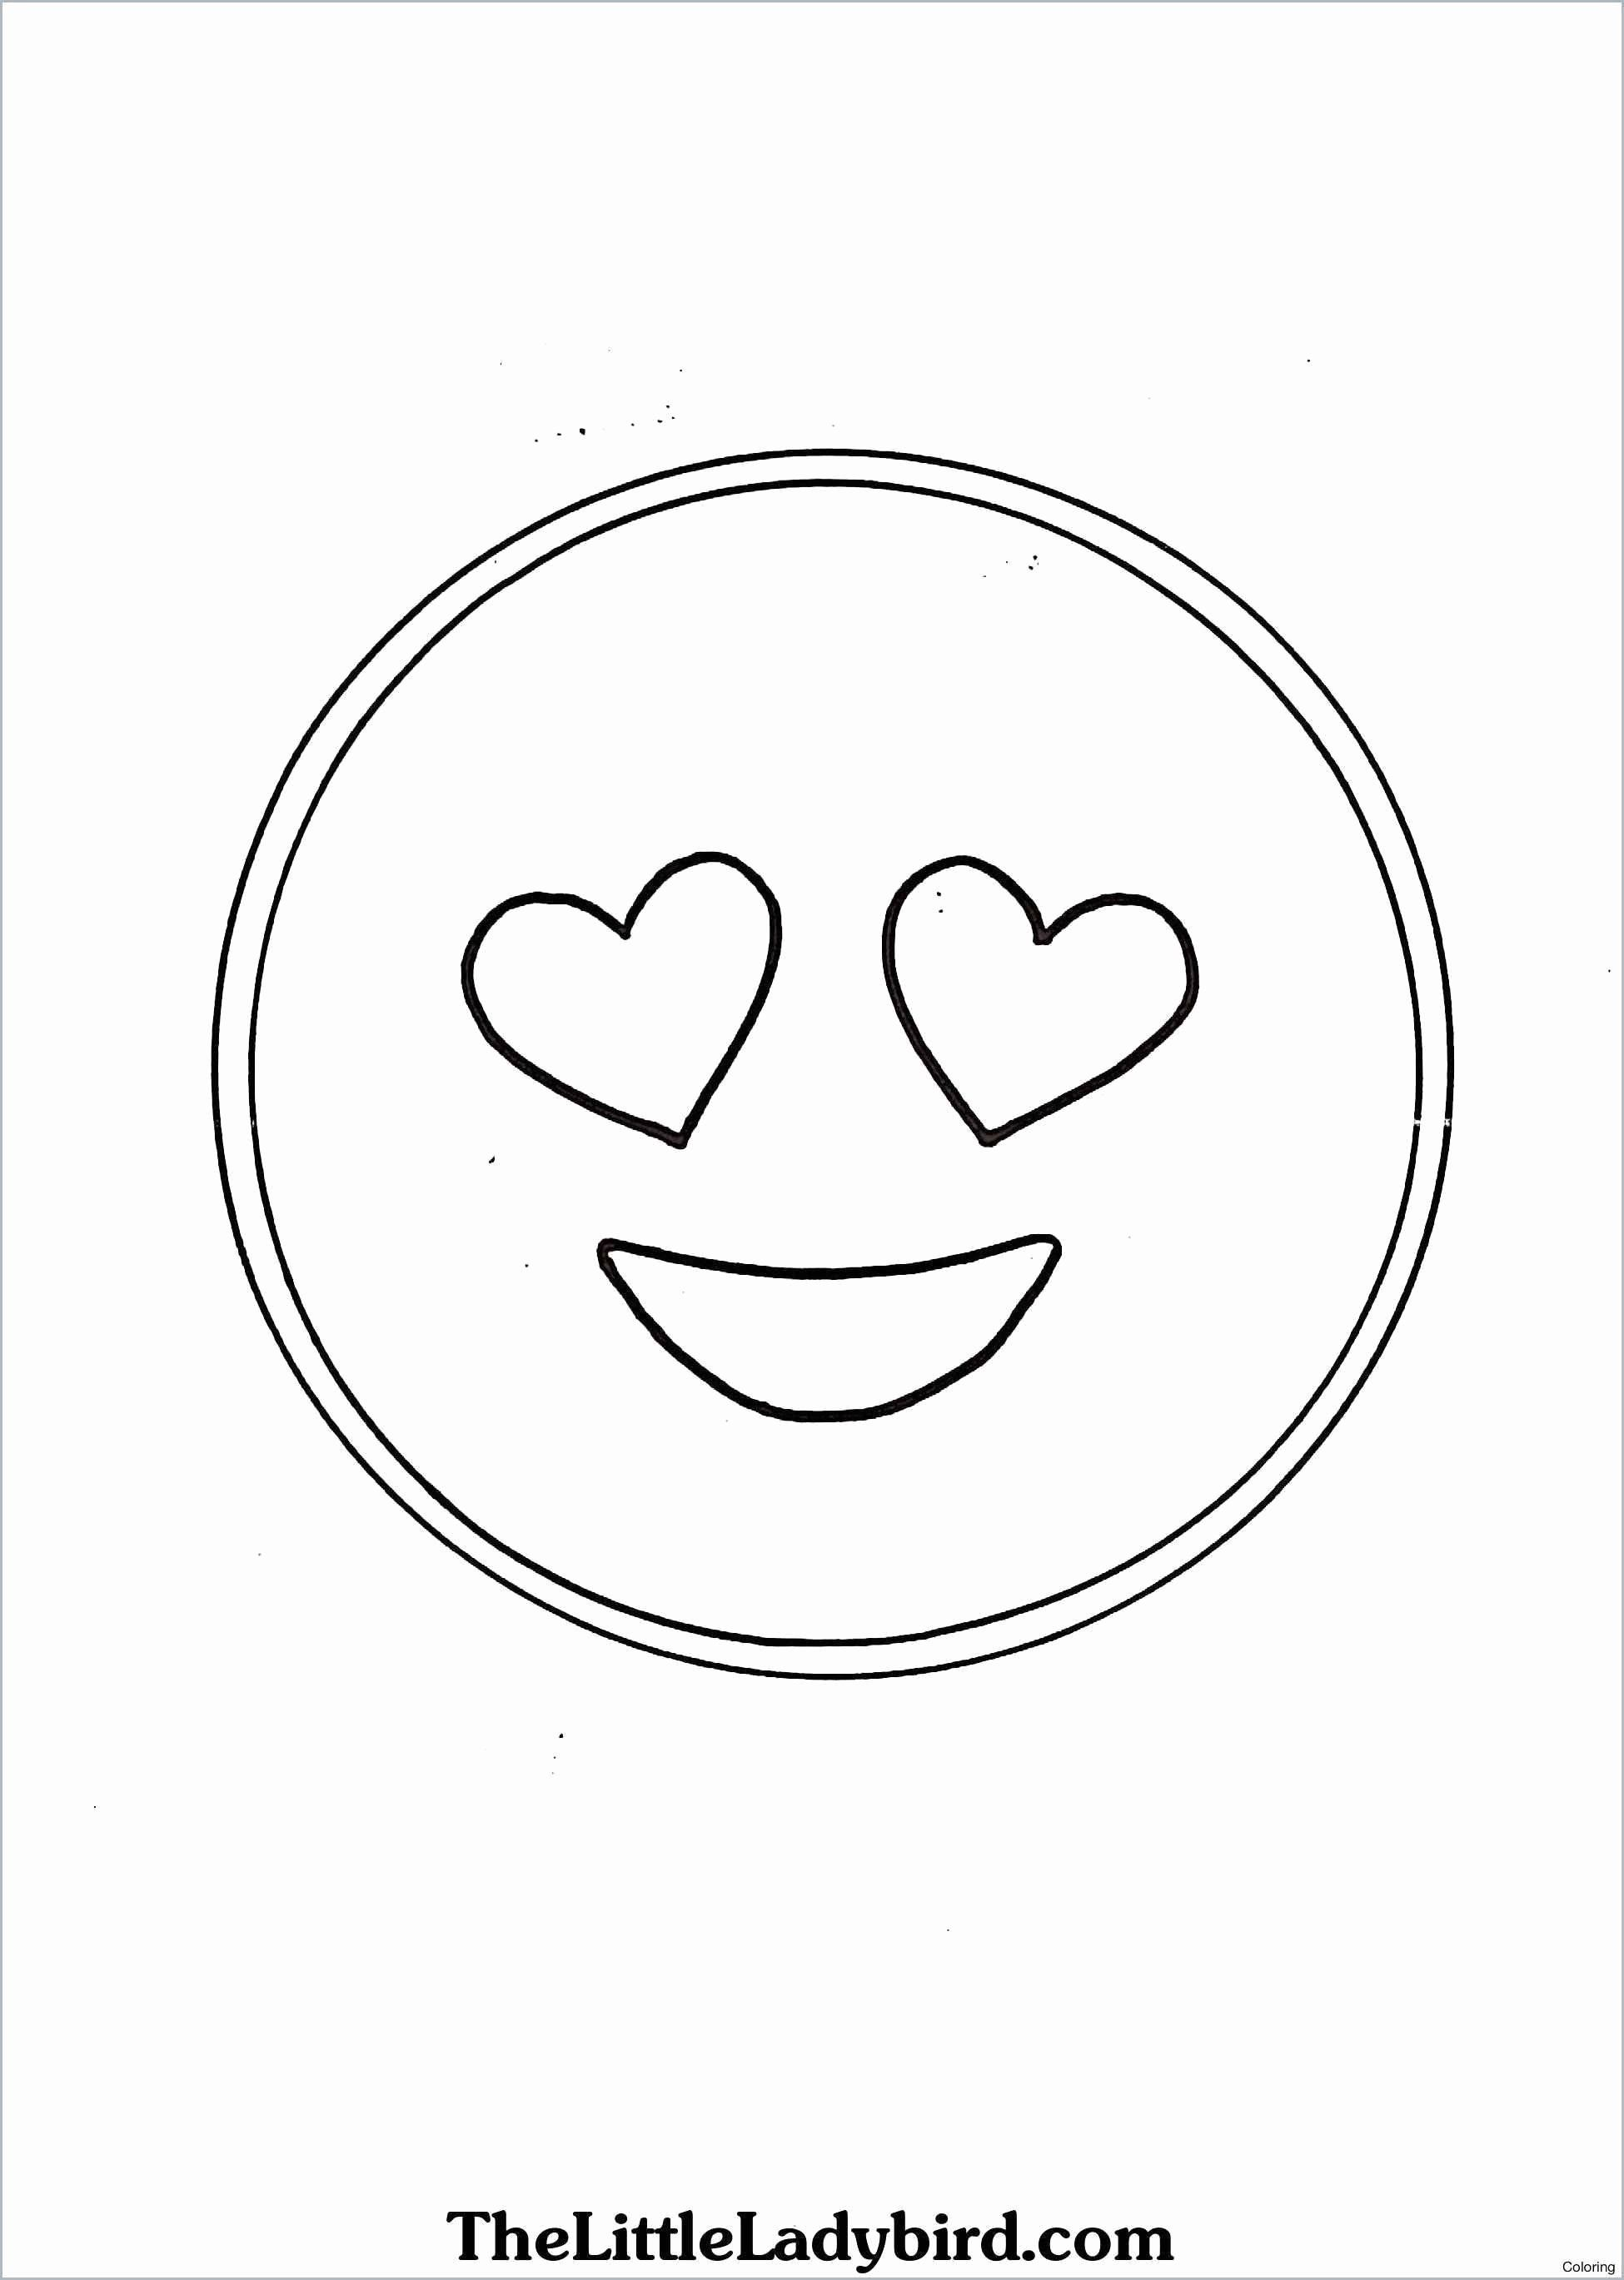 Children 039 S Christmas Coloring Pages Printable Fresh Pizza Coloring Pages Emoji Coloring Pages Heart Coloring Pages New Year Coloring Pages